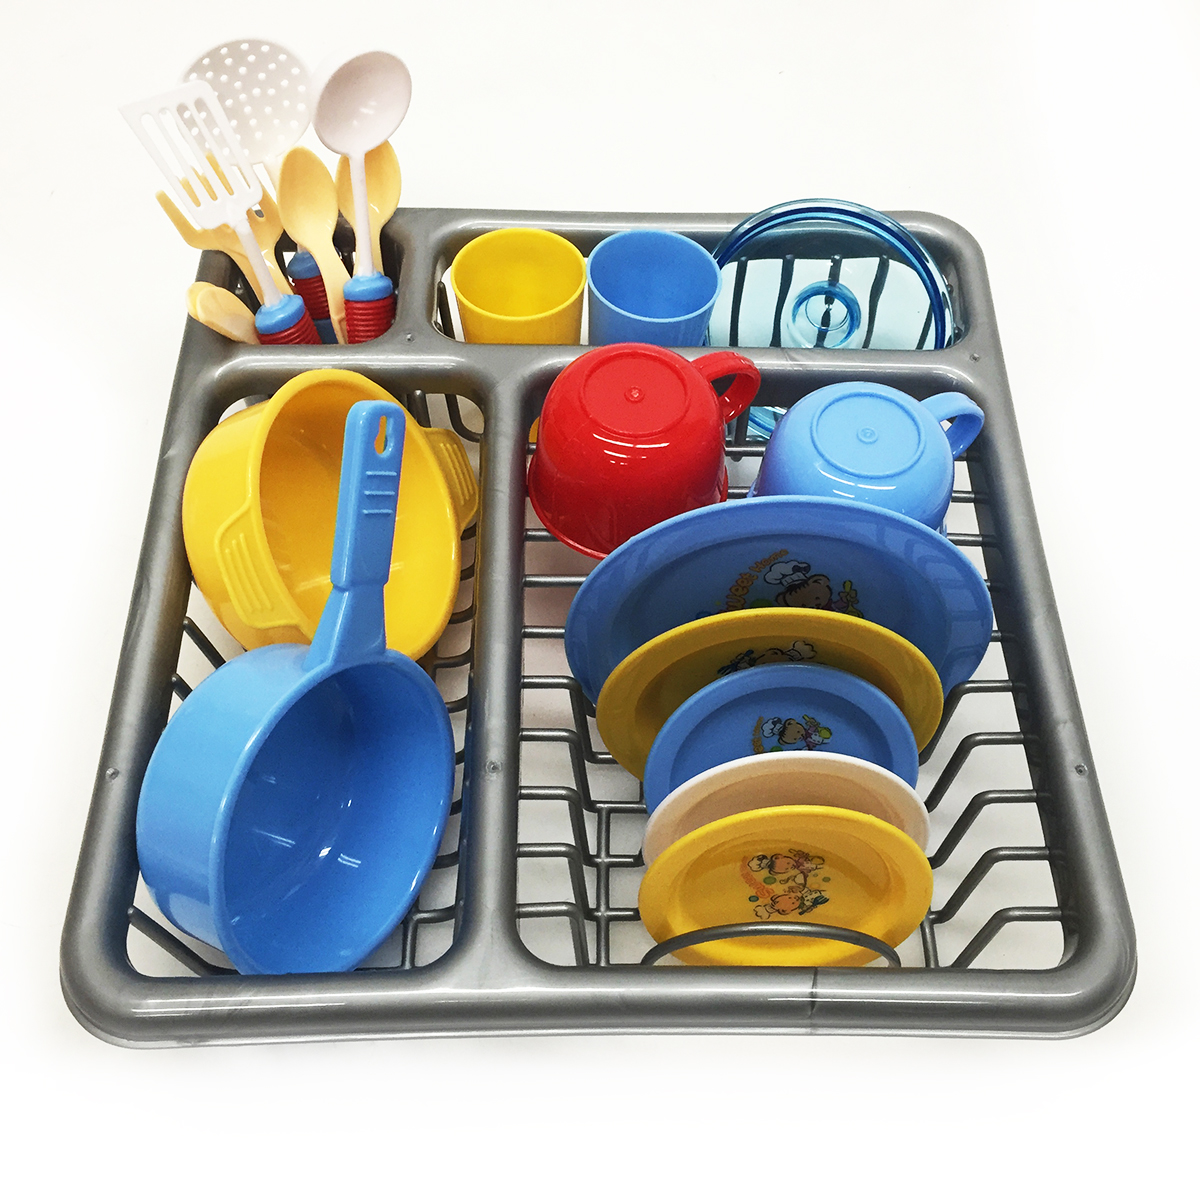 Kids Pretend Play Wash and Dry Dish Set with Drying Rack Playware Playset by Apontus